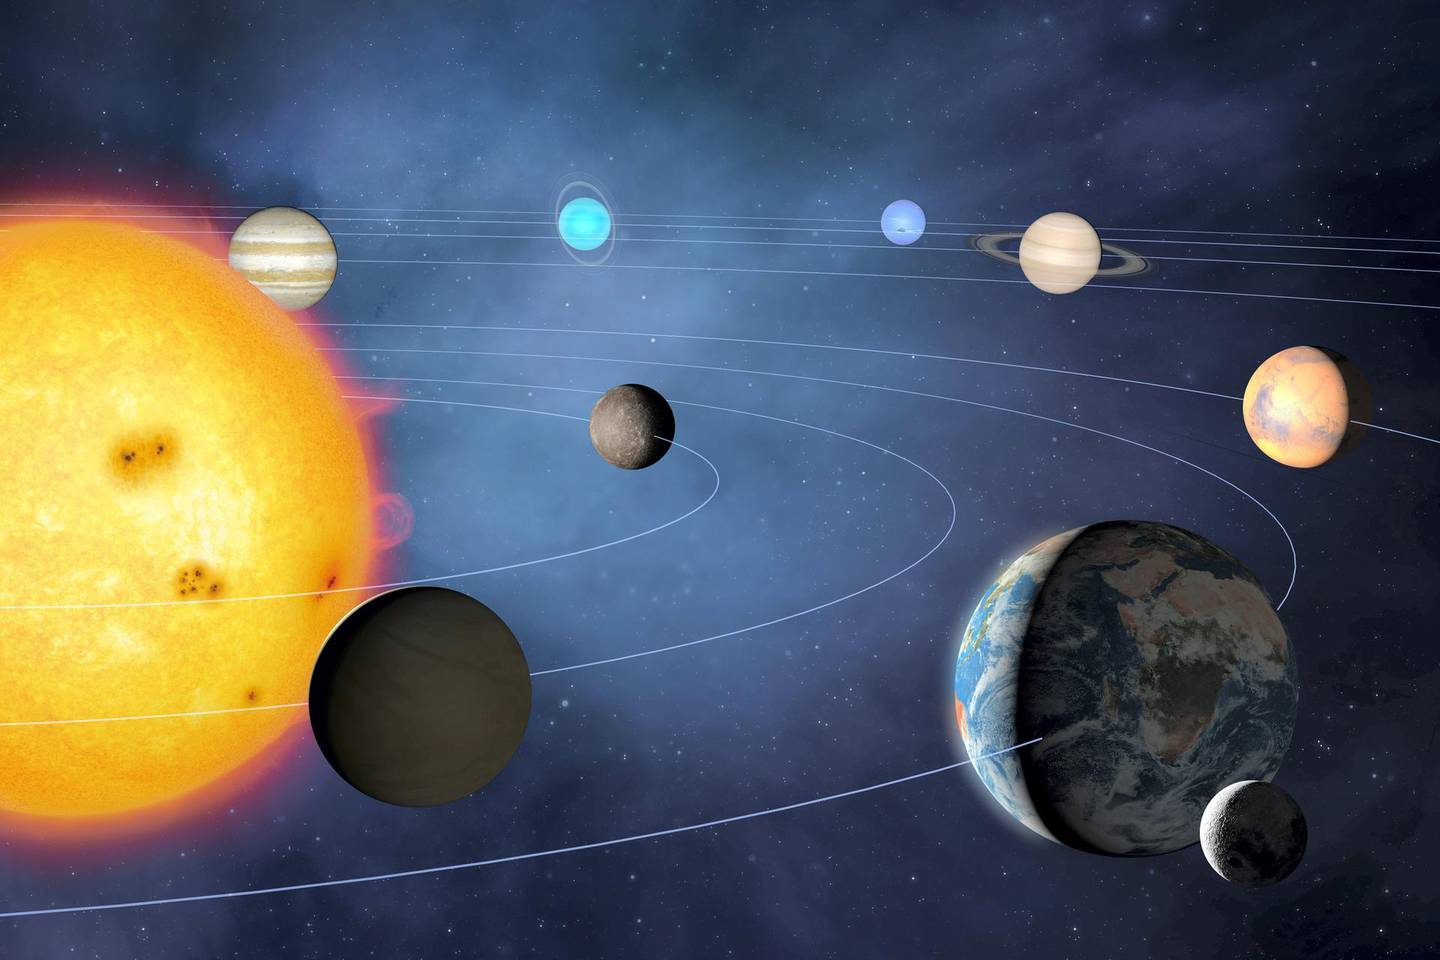 Illustration of the solar system, showing the paths of the eight major planets as they orbit the Sun. The four inner planets are, from inner to outer, Mercury, Venus, Earth and Mars. The four outer planets are, inner to outer, Jupiter, Saturn, Uranus and Neptune.